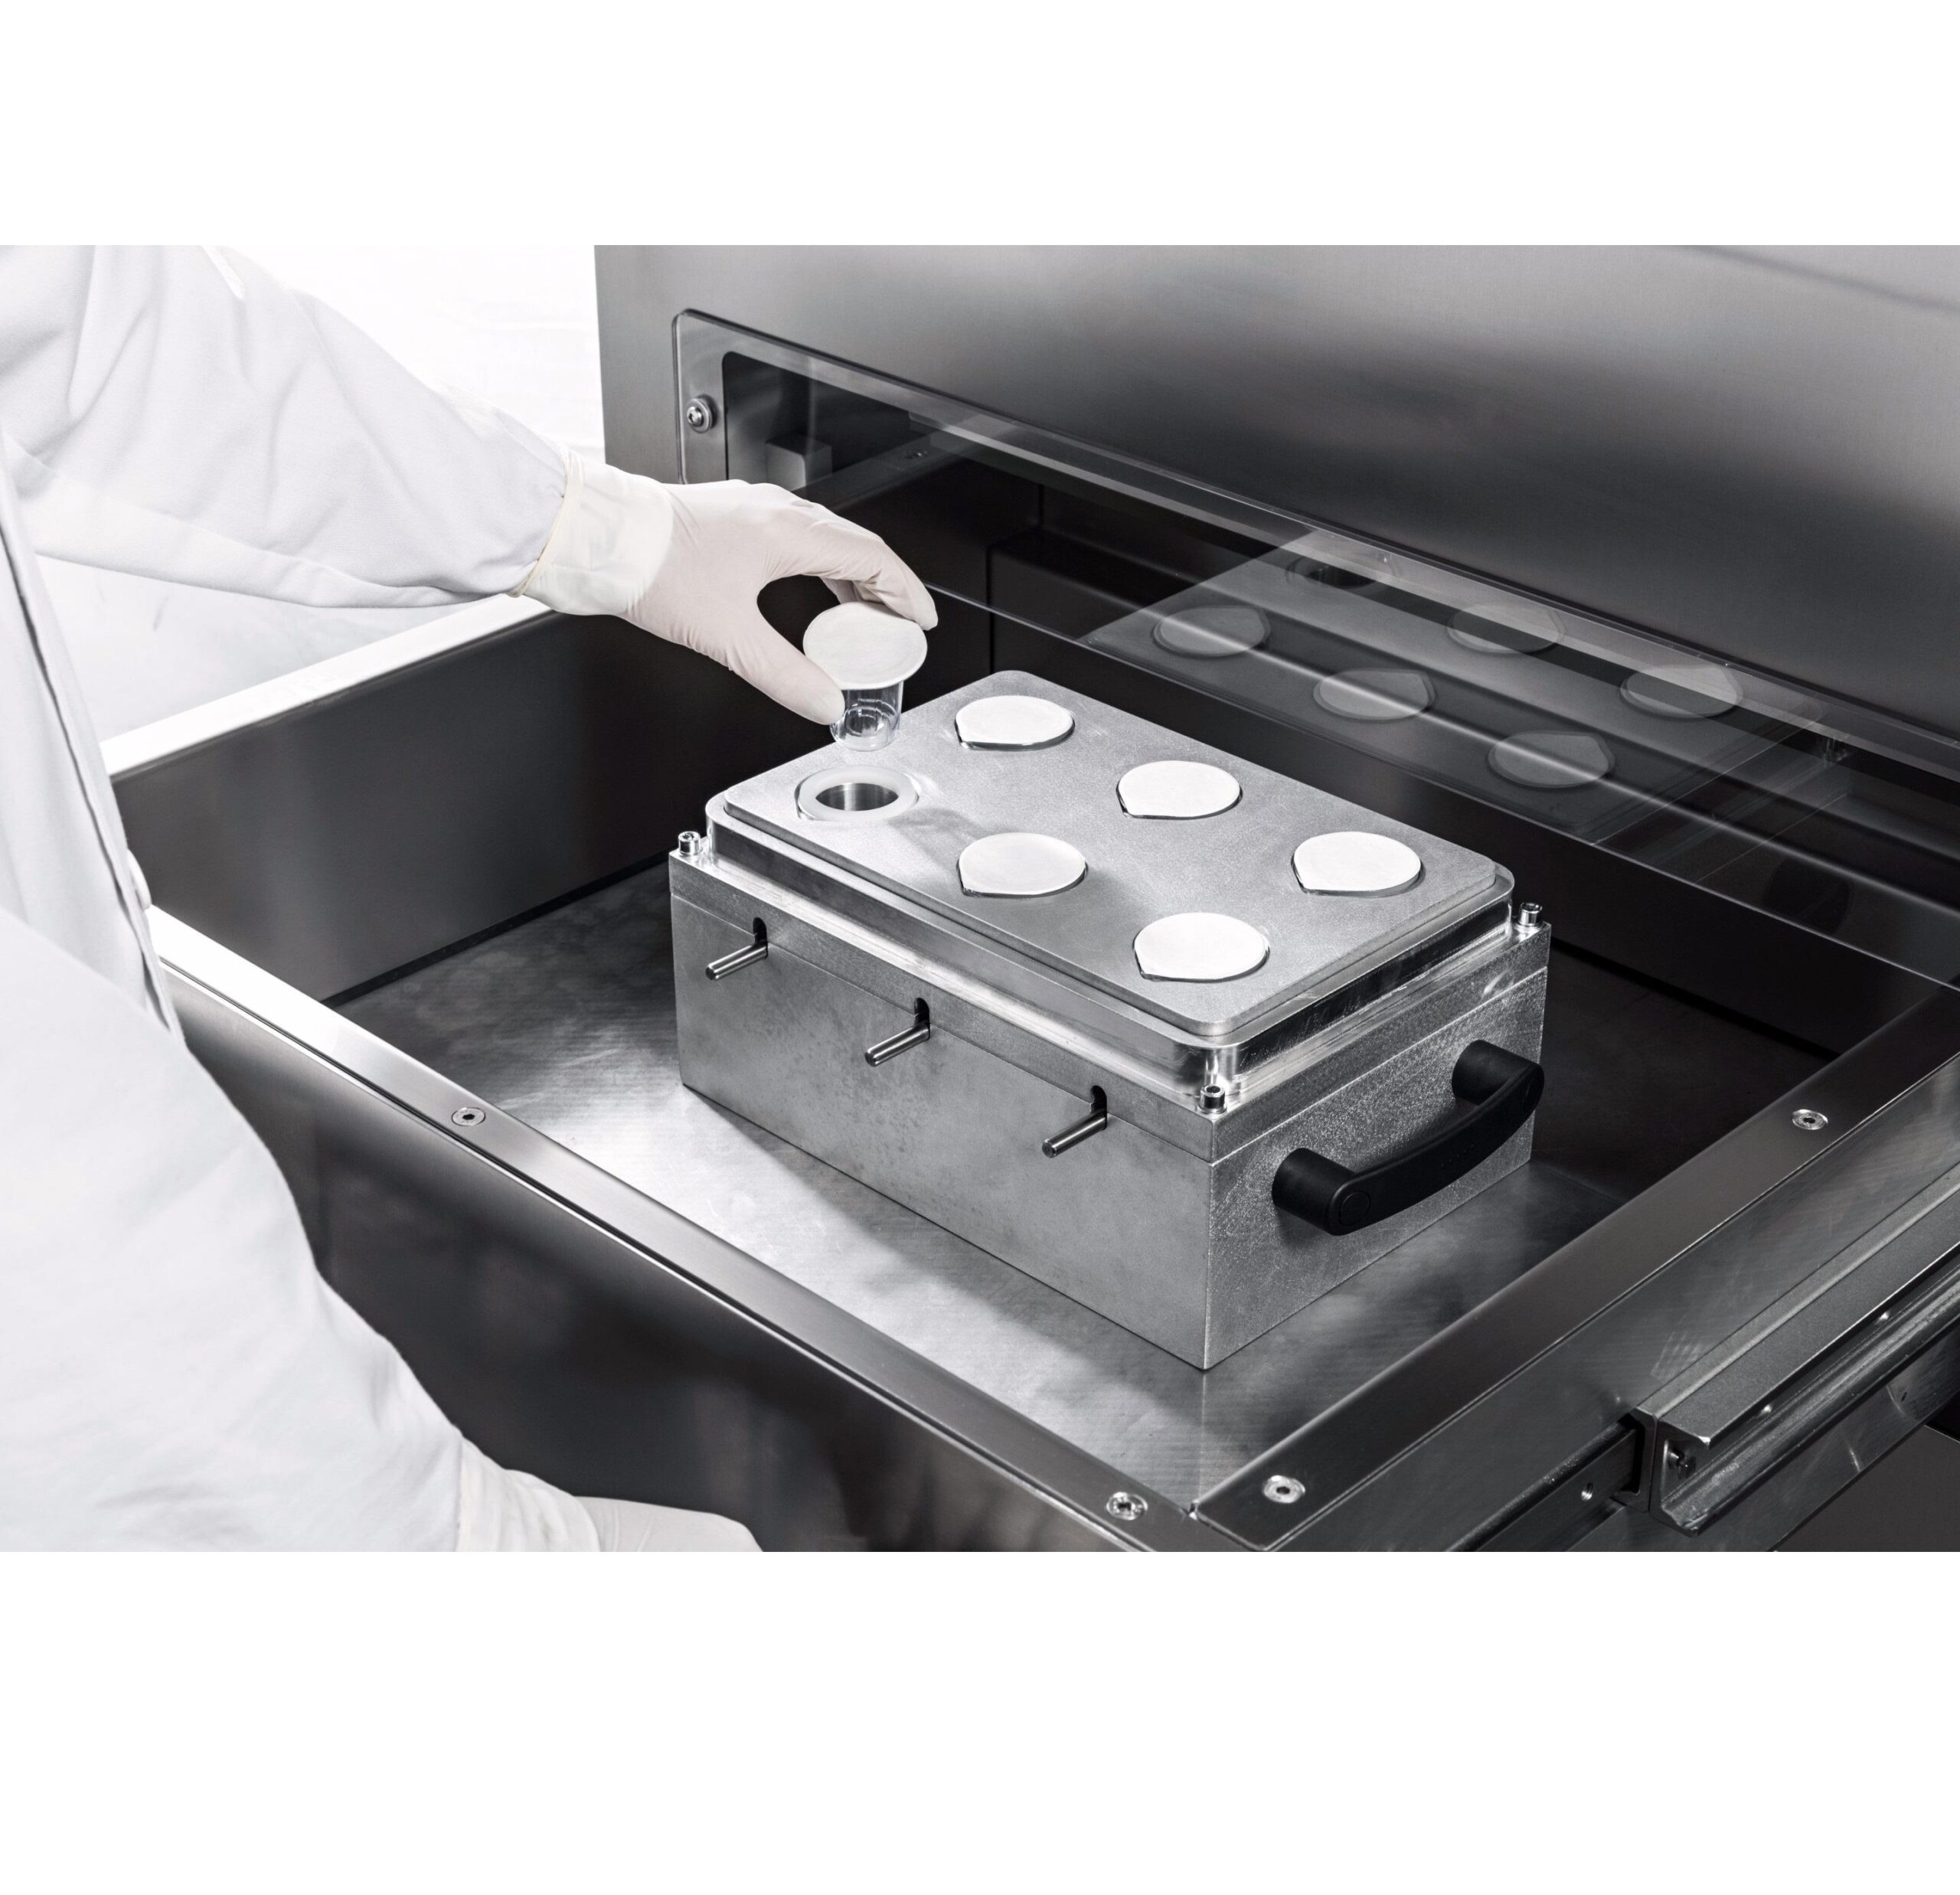 Semiautomatic blister sealing machines for medical devices